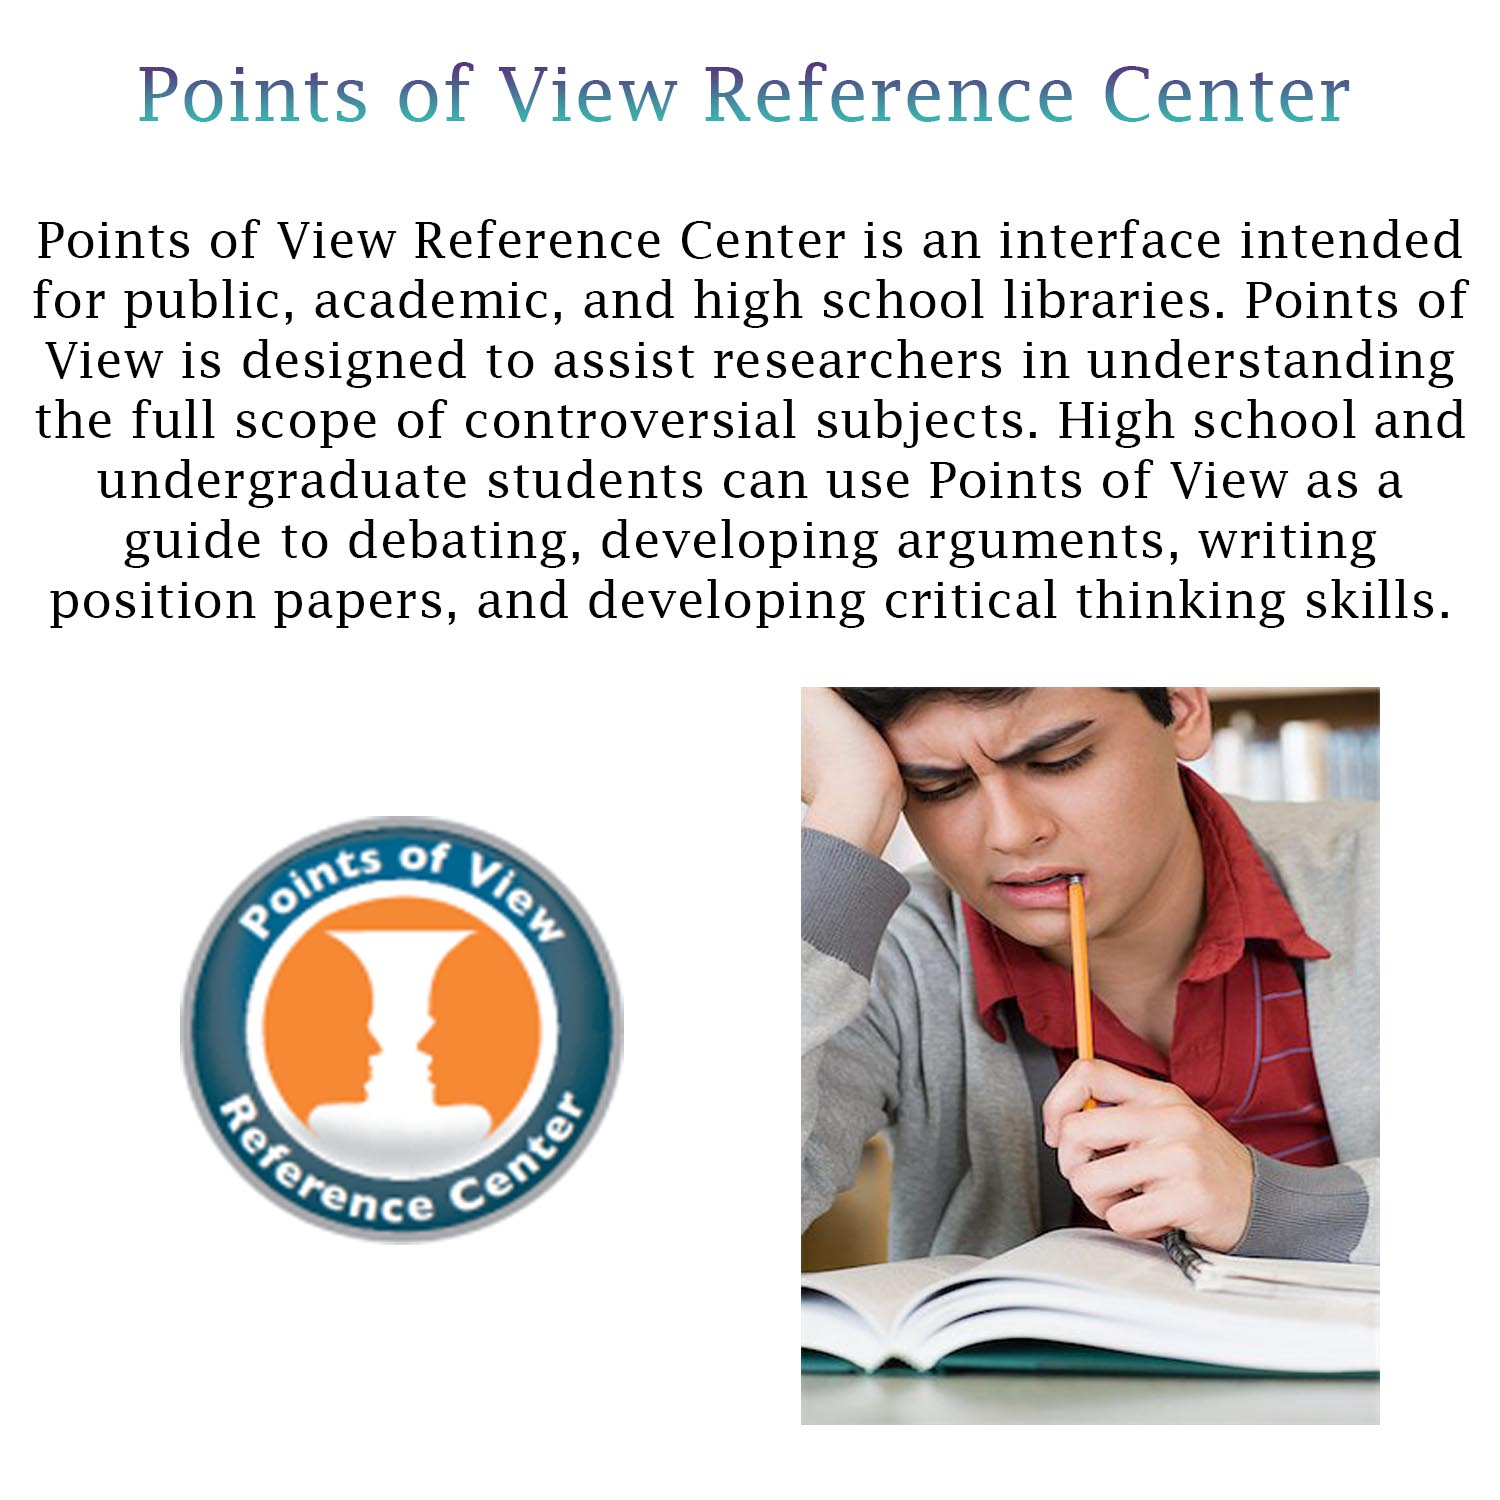 Small image with a synopsis of Ebsco's Points of View Reference Database